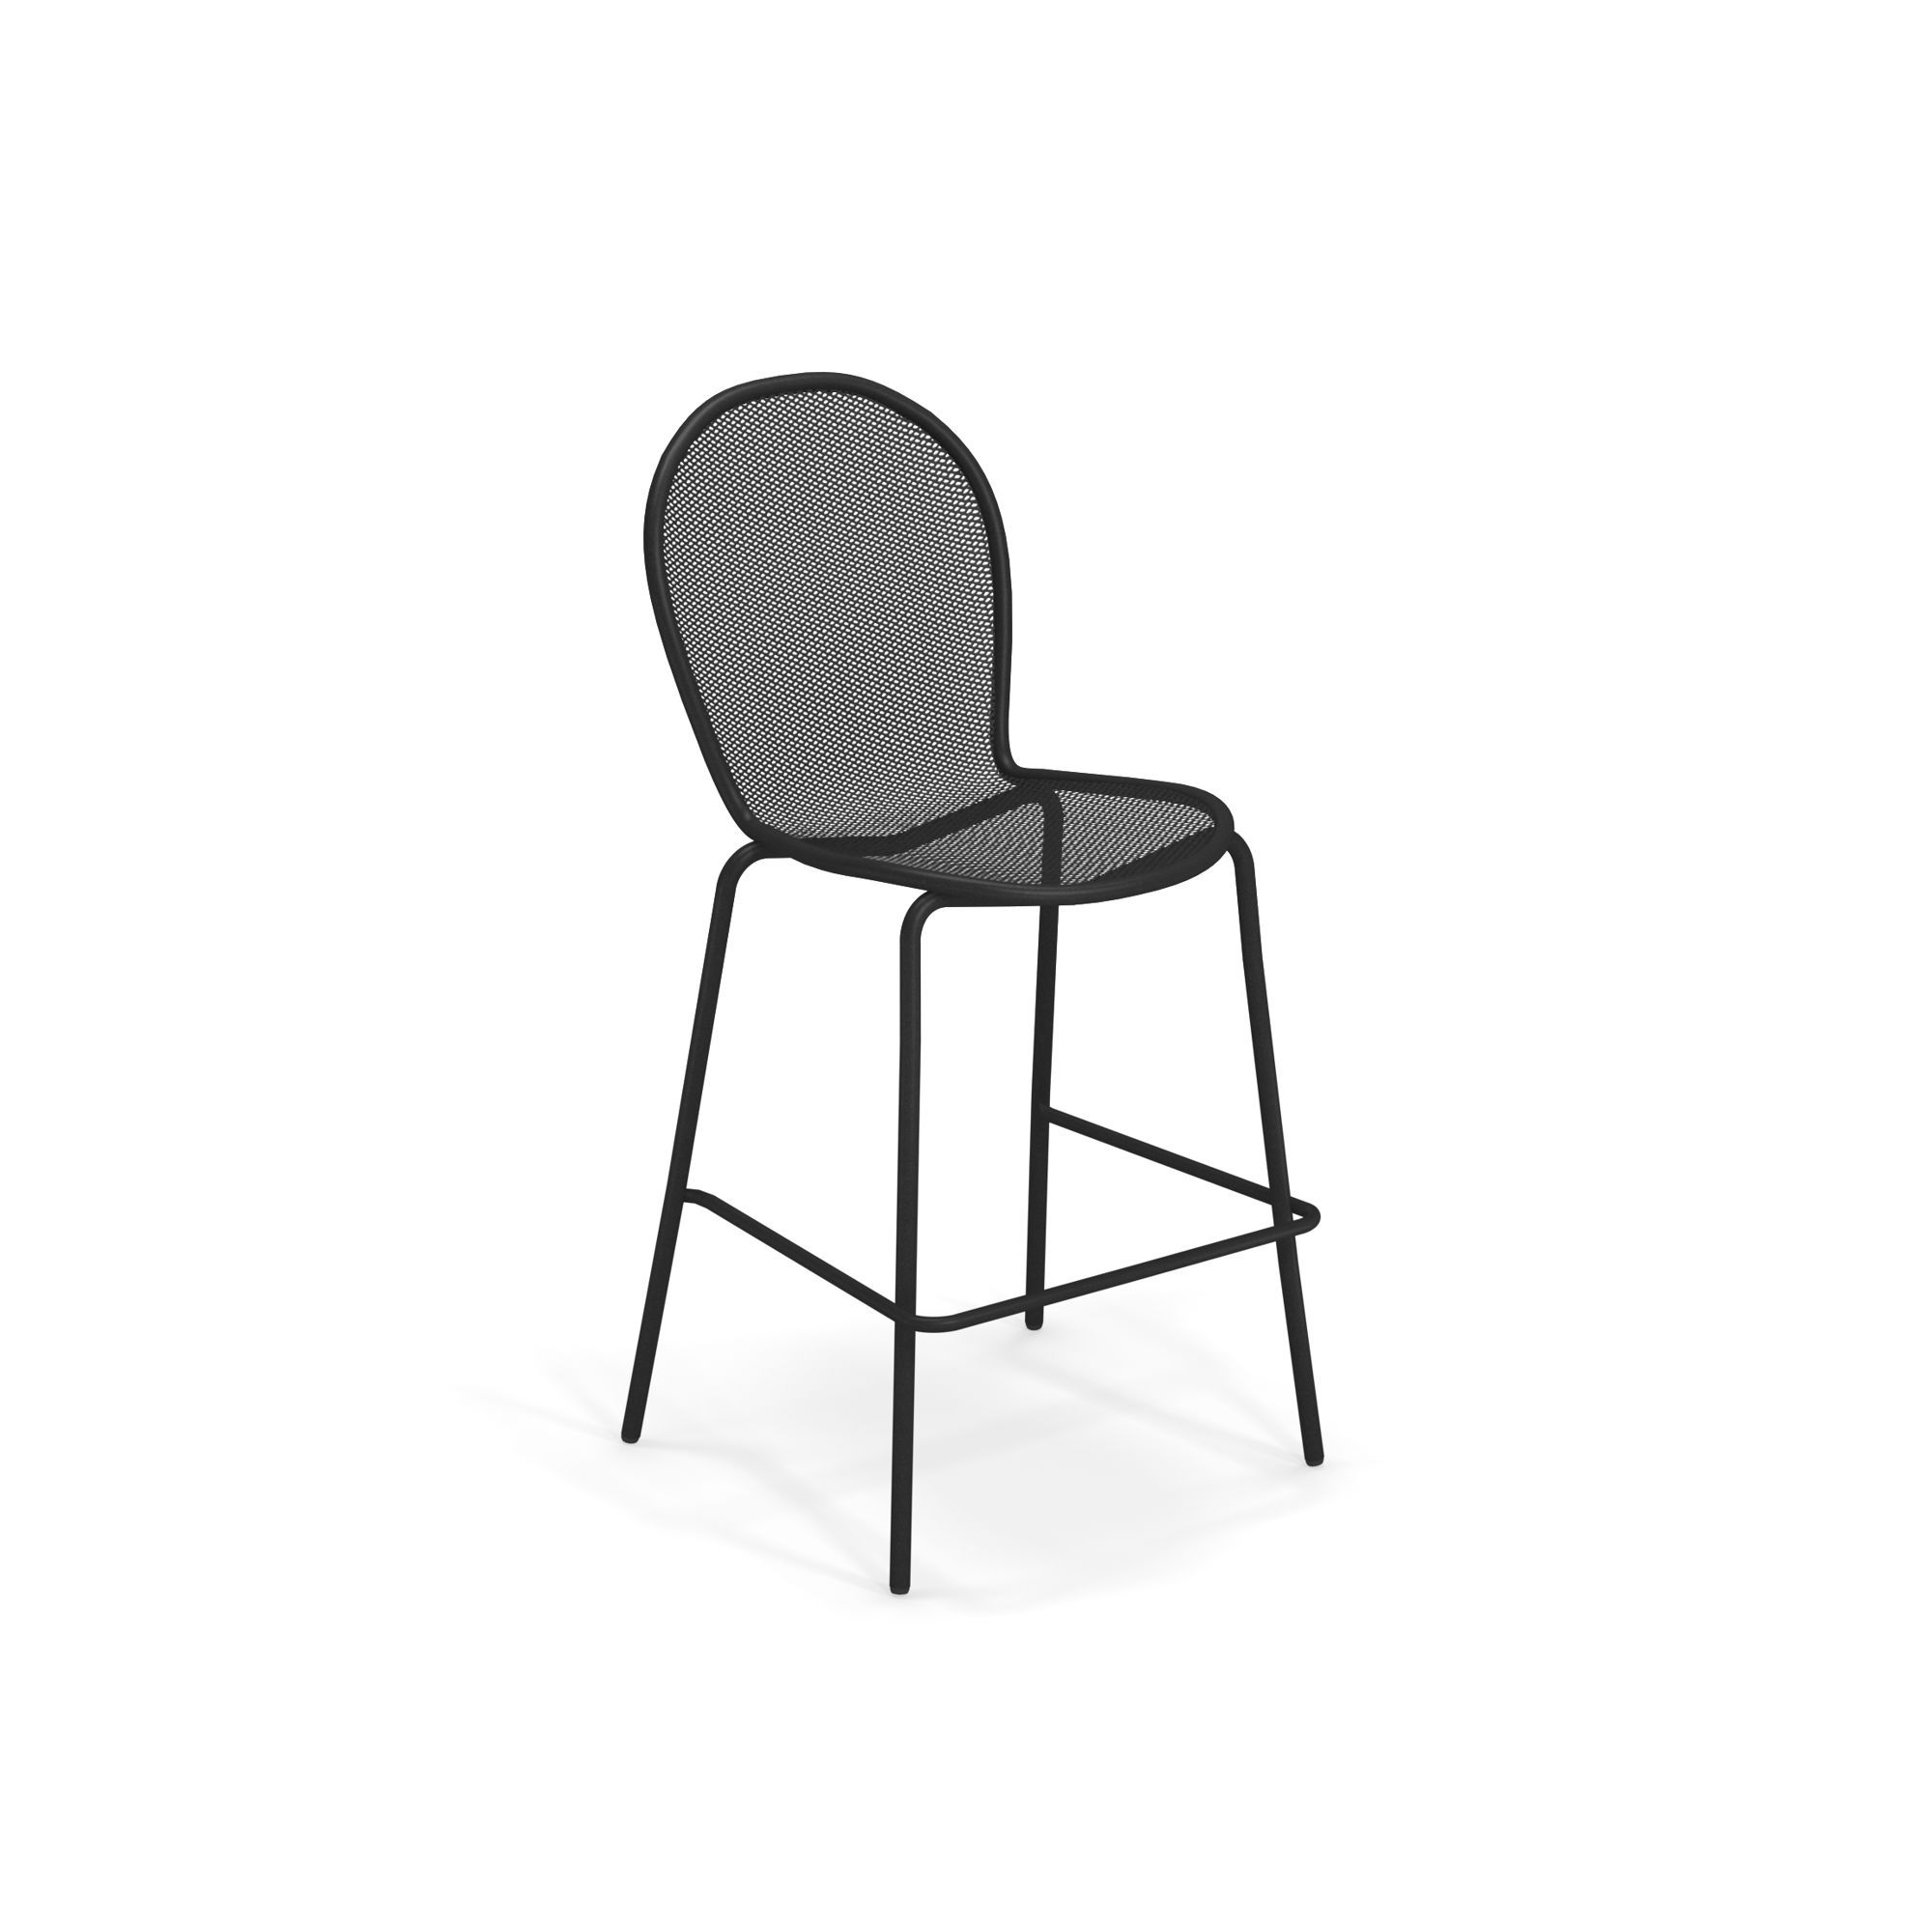 emuamericas, llc 128-24 bar stool, stacking, outdoor